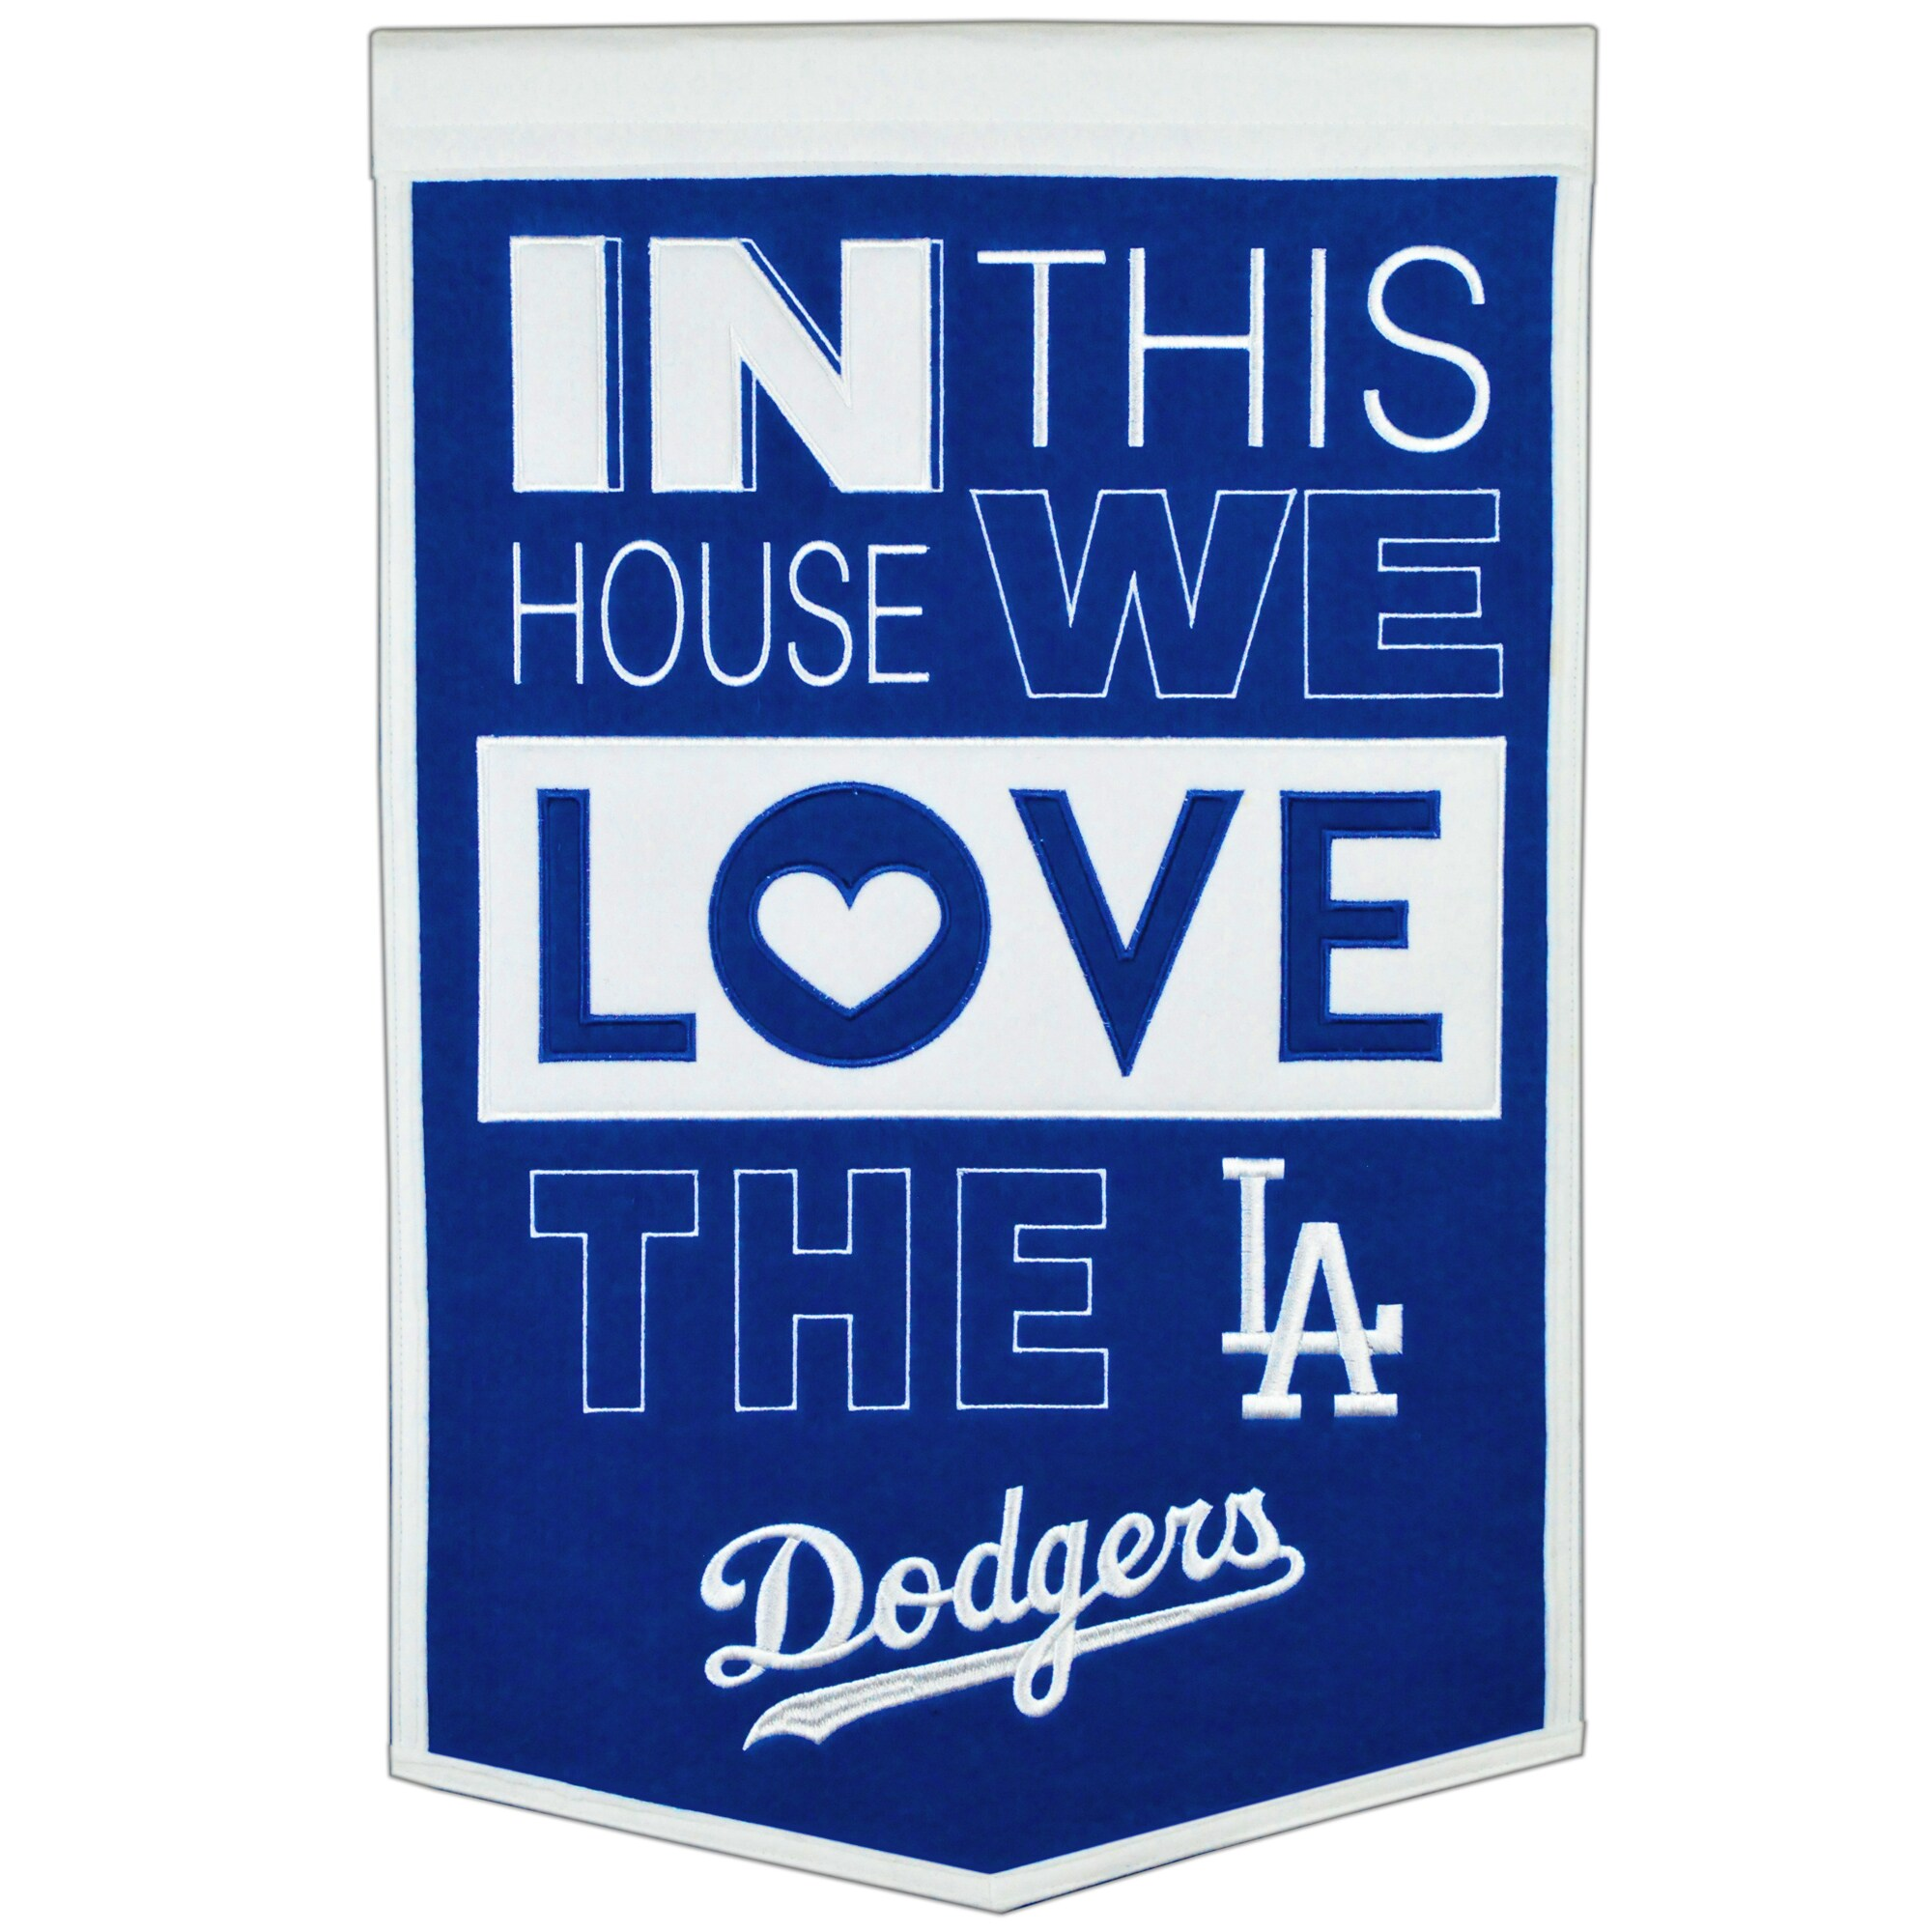 Los Angeles Dodgers 15'' x 24'' Home Banner - Blue/White